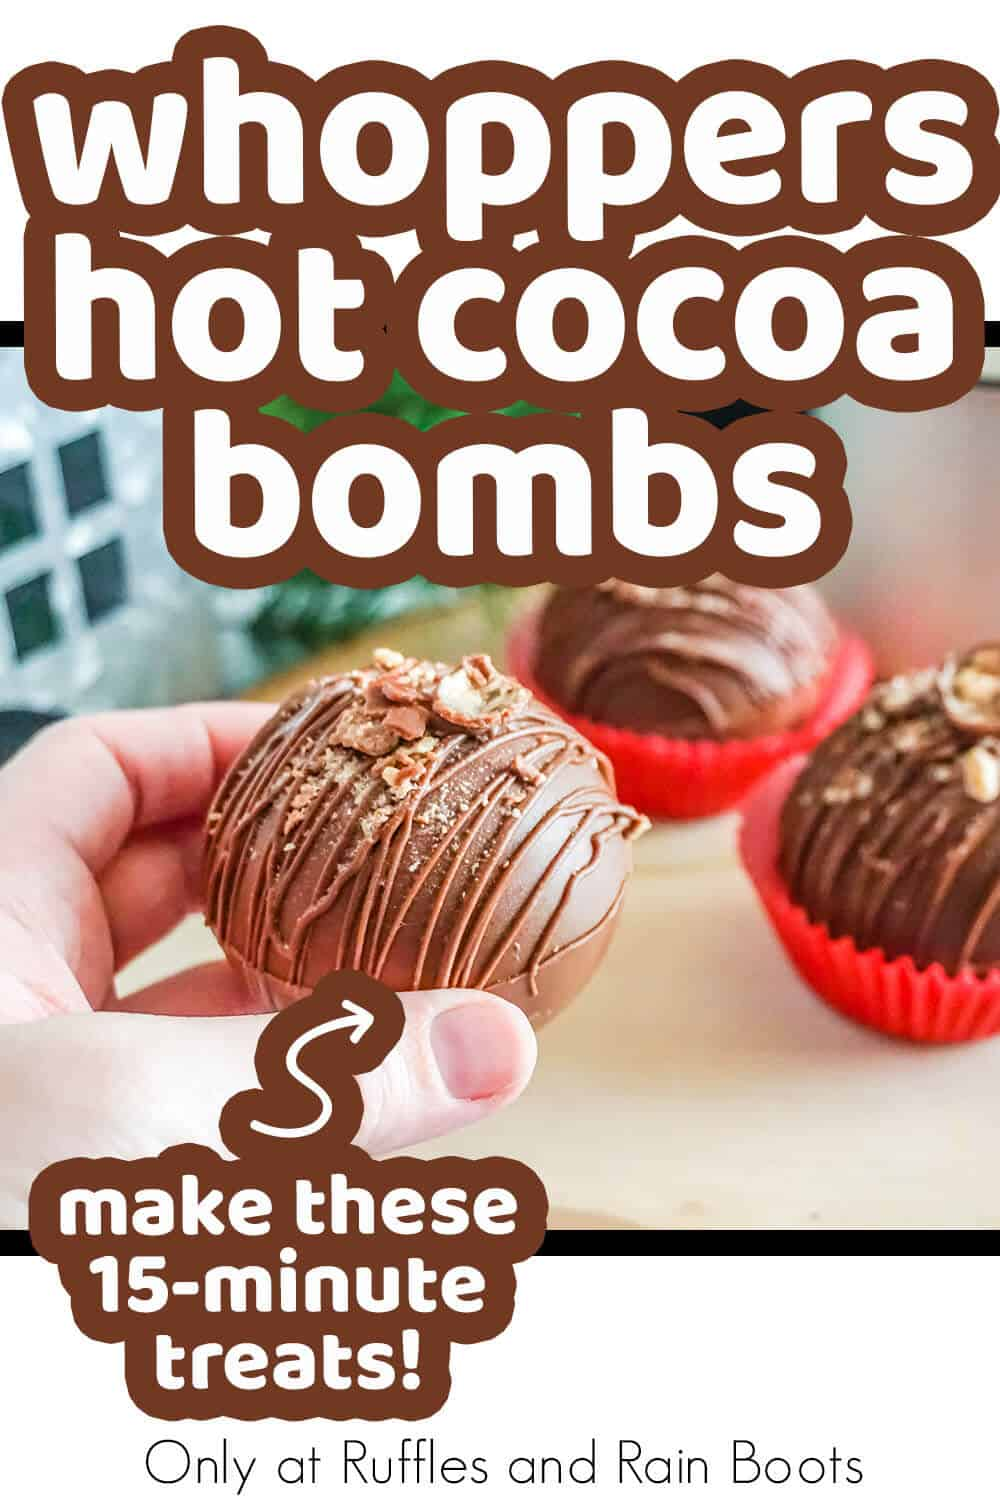 malted hot cocoa bomb recipe with text which reads whoppers hot cocoa bombs make these 15-minute treats!